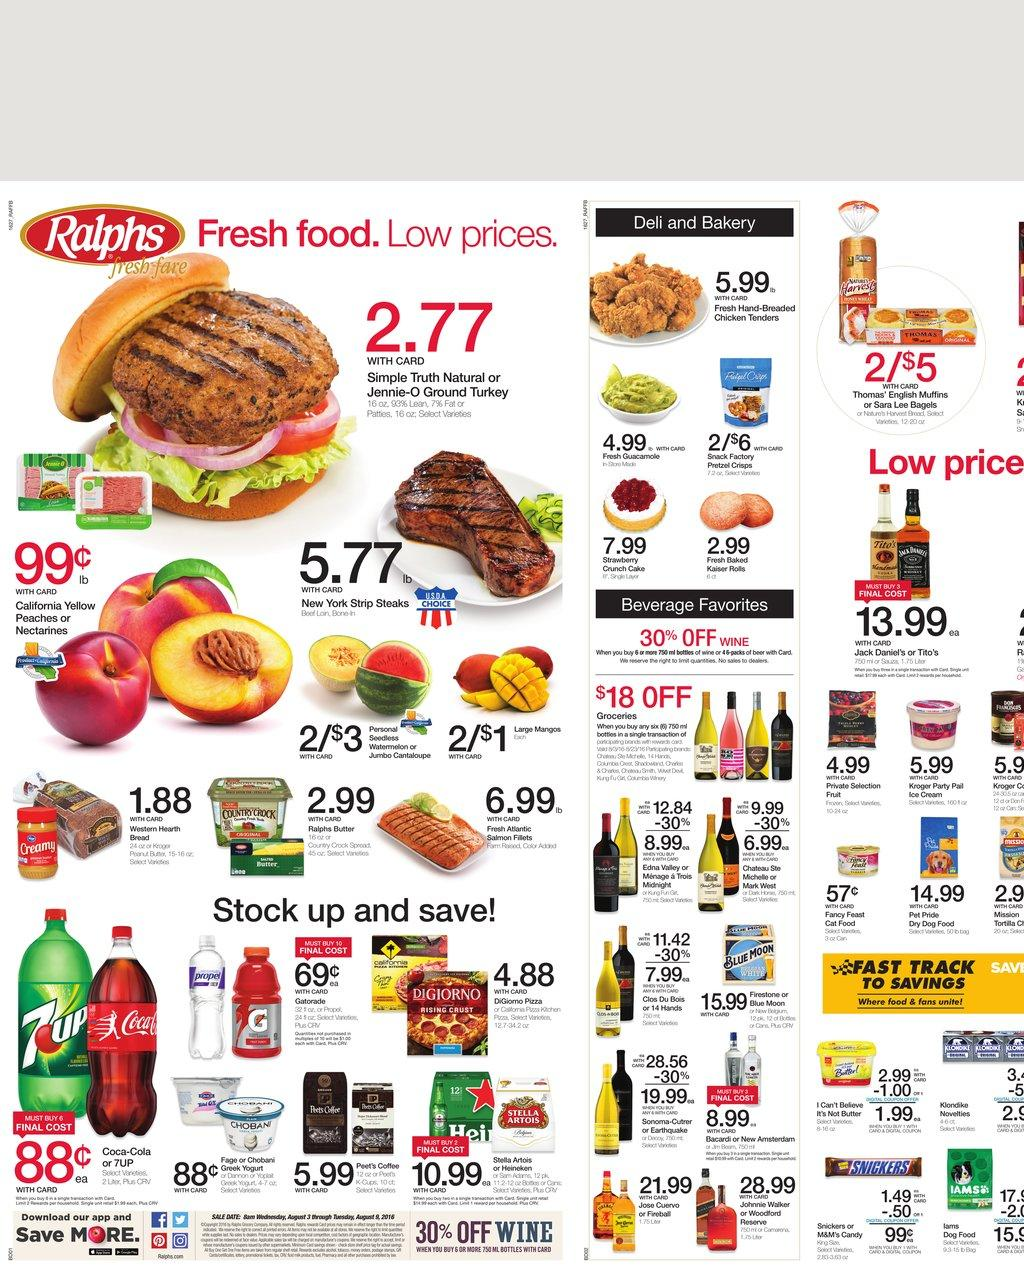 Brookshire's Weekly Ad November 28 - December 4, Cyber Monday by this post. Browse the current Brookshire's weekly ad this week, Preview valid 11/28 - 12/4. Don't miss the Brookshire's coupon and deals from the current ad.